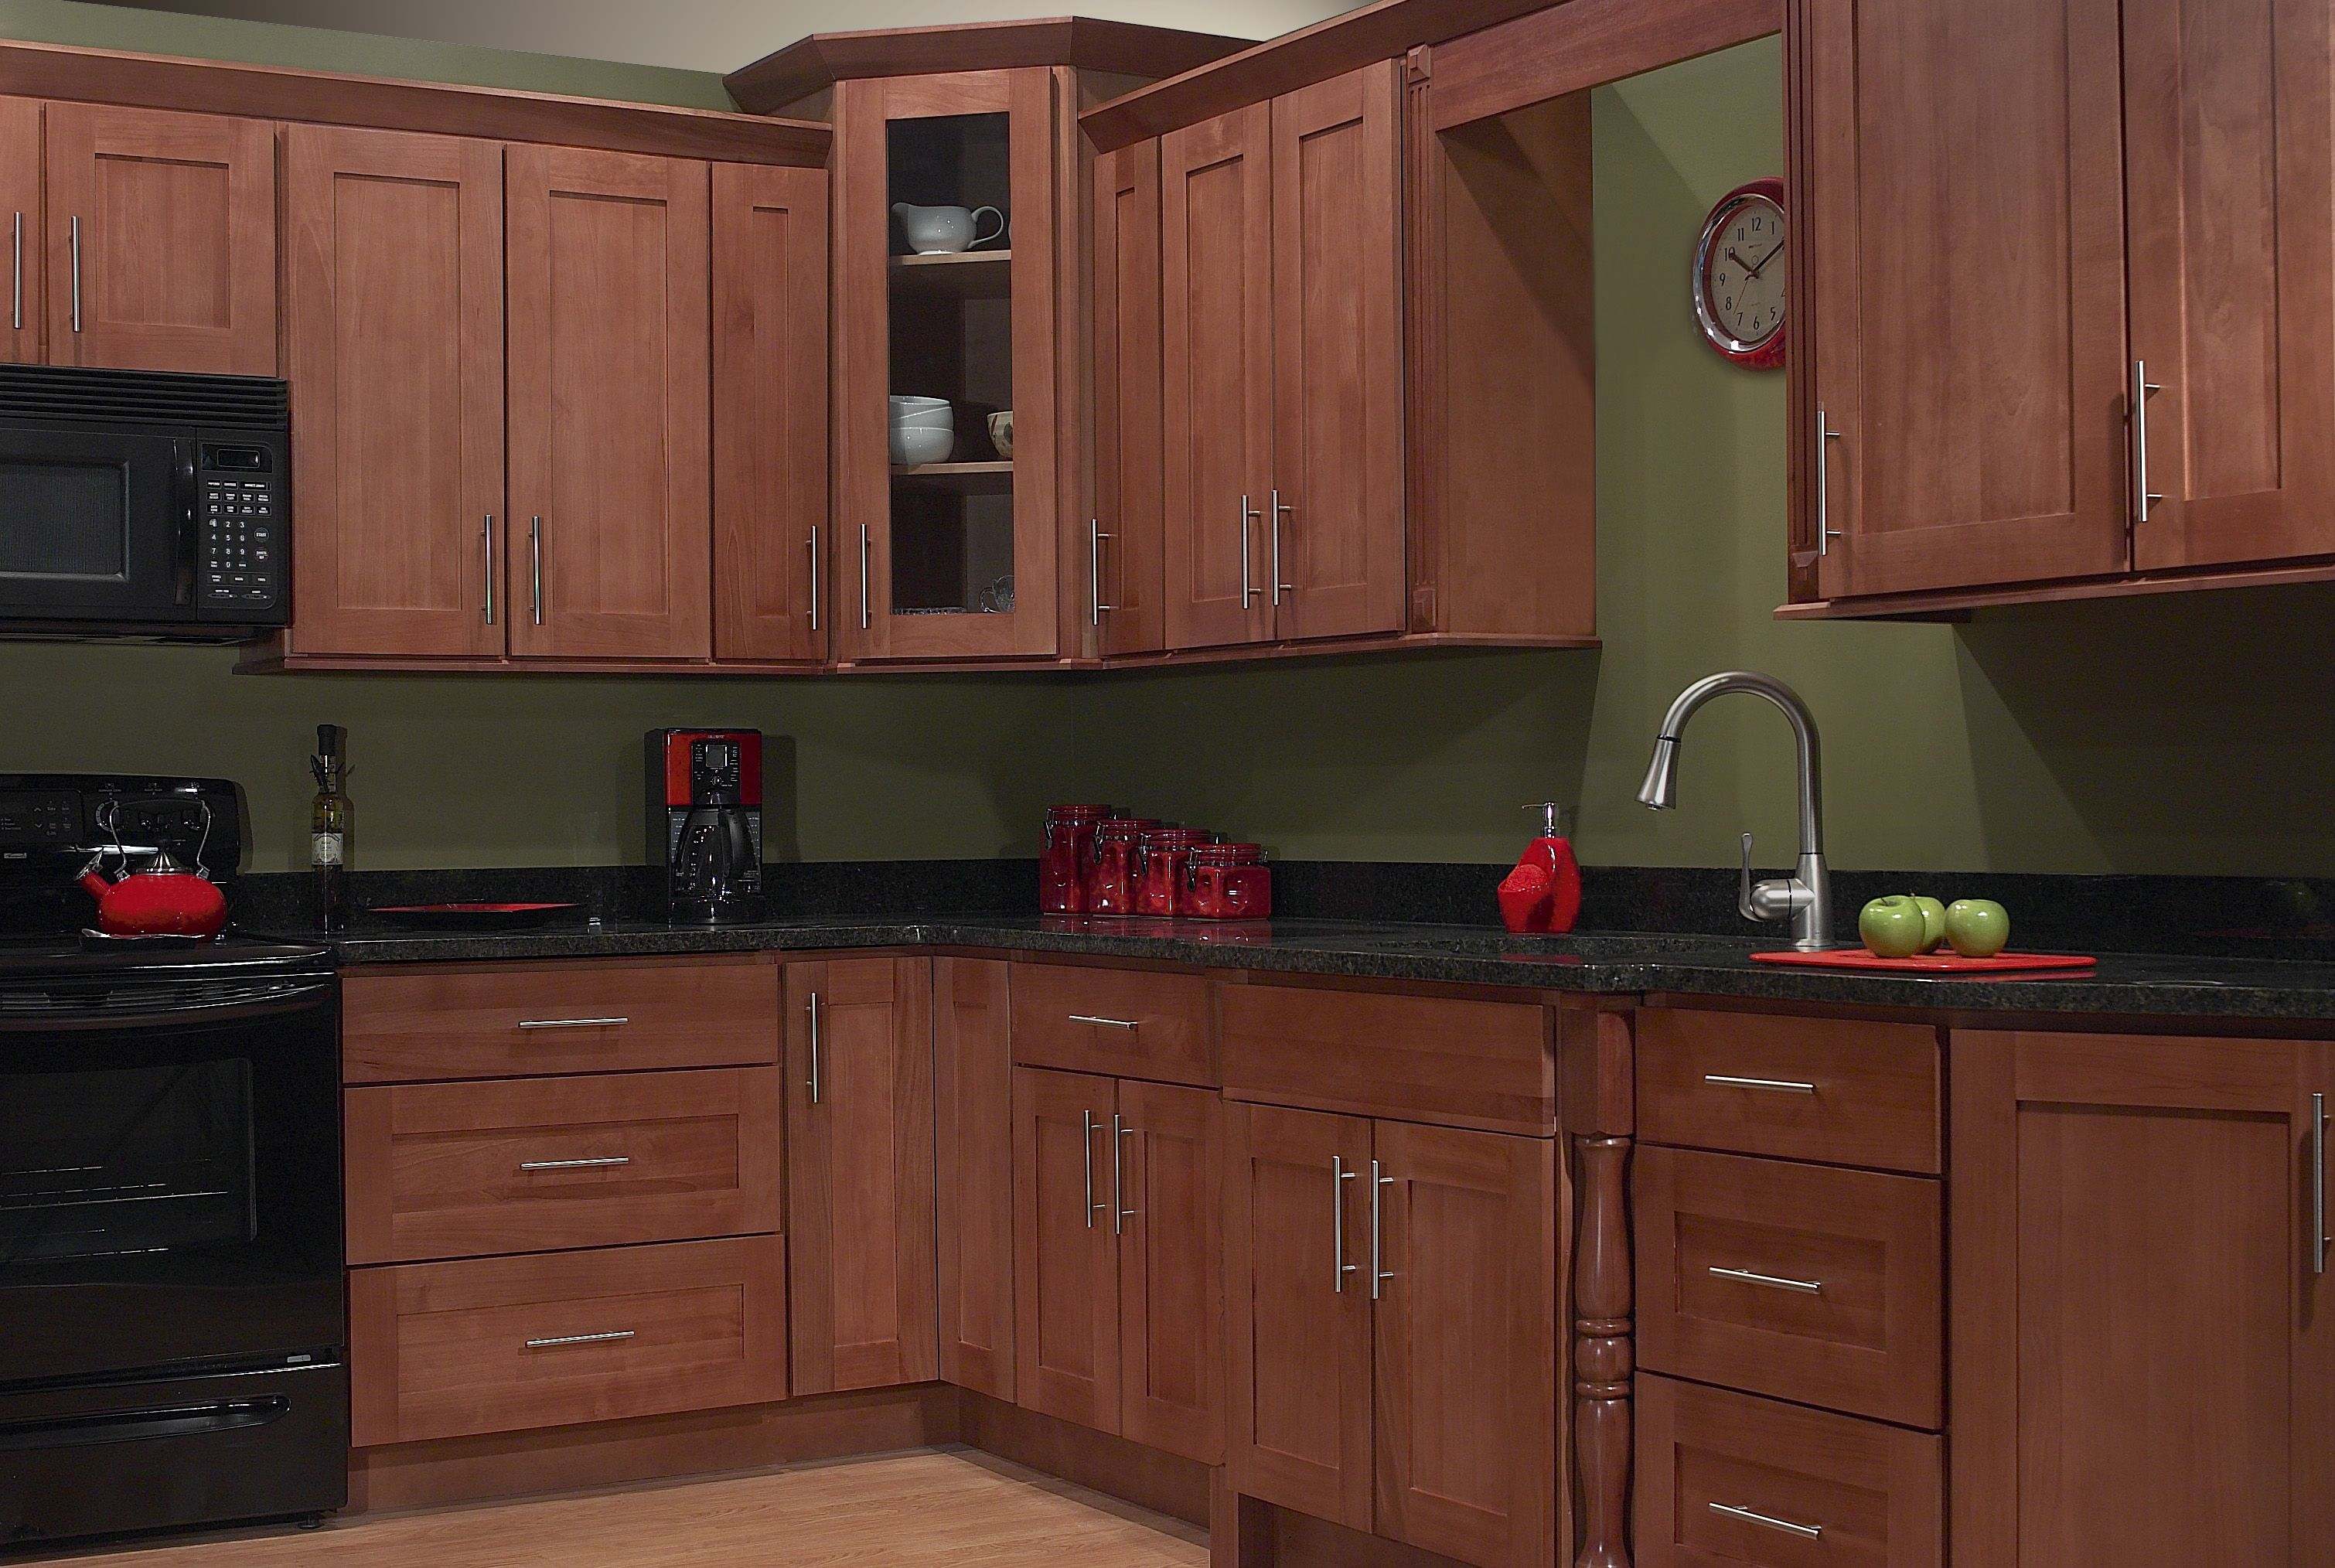 Red Birch Shaker Kitchen Cabinetry Sold At Innovations Shaker Style Kitchen Cabinets Birch Kitchen Cabinets Kitchen Cabinet Styles